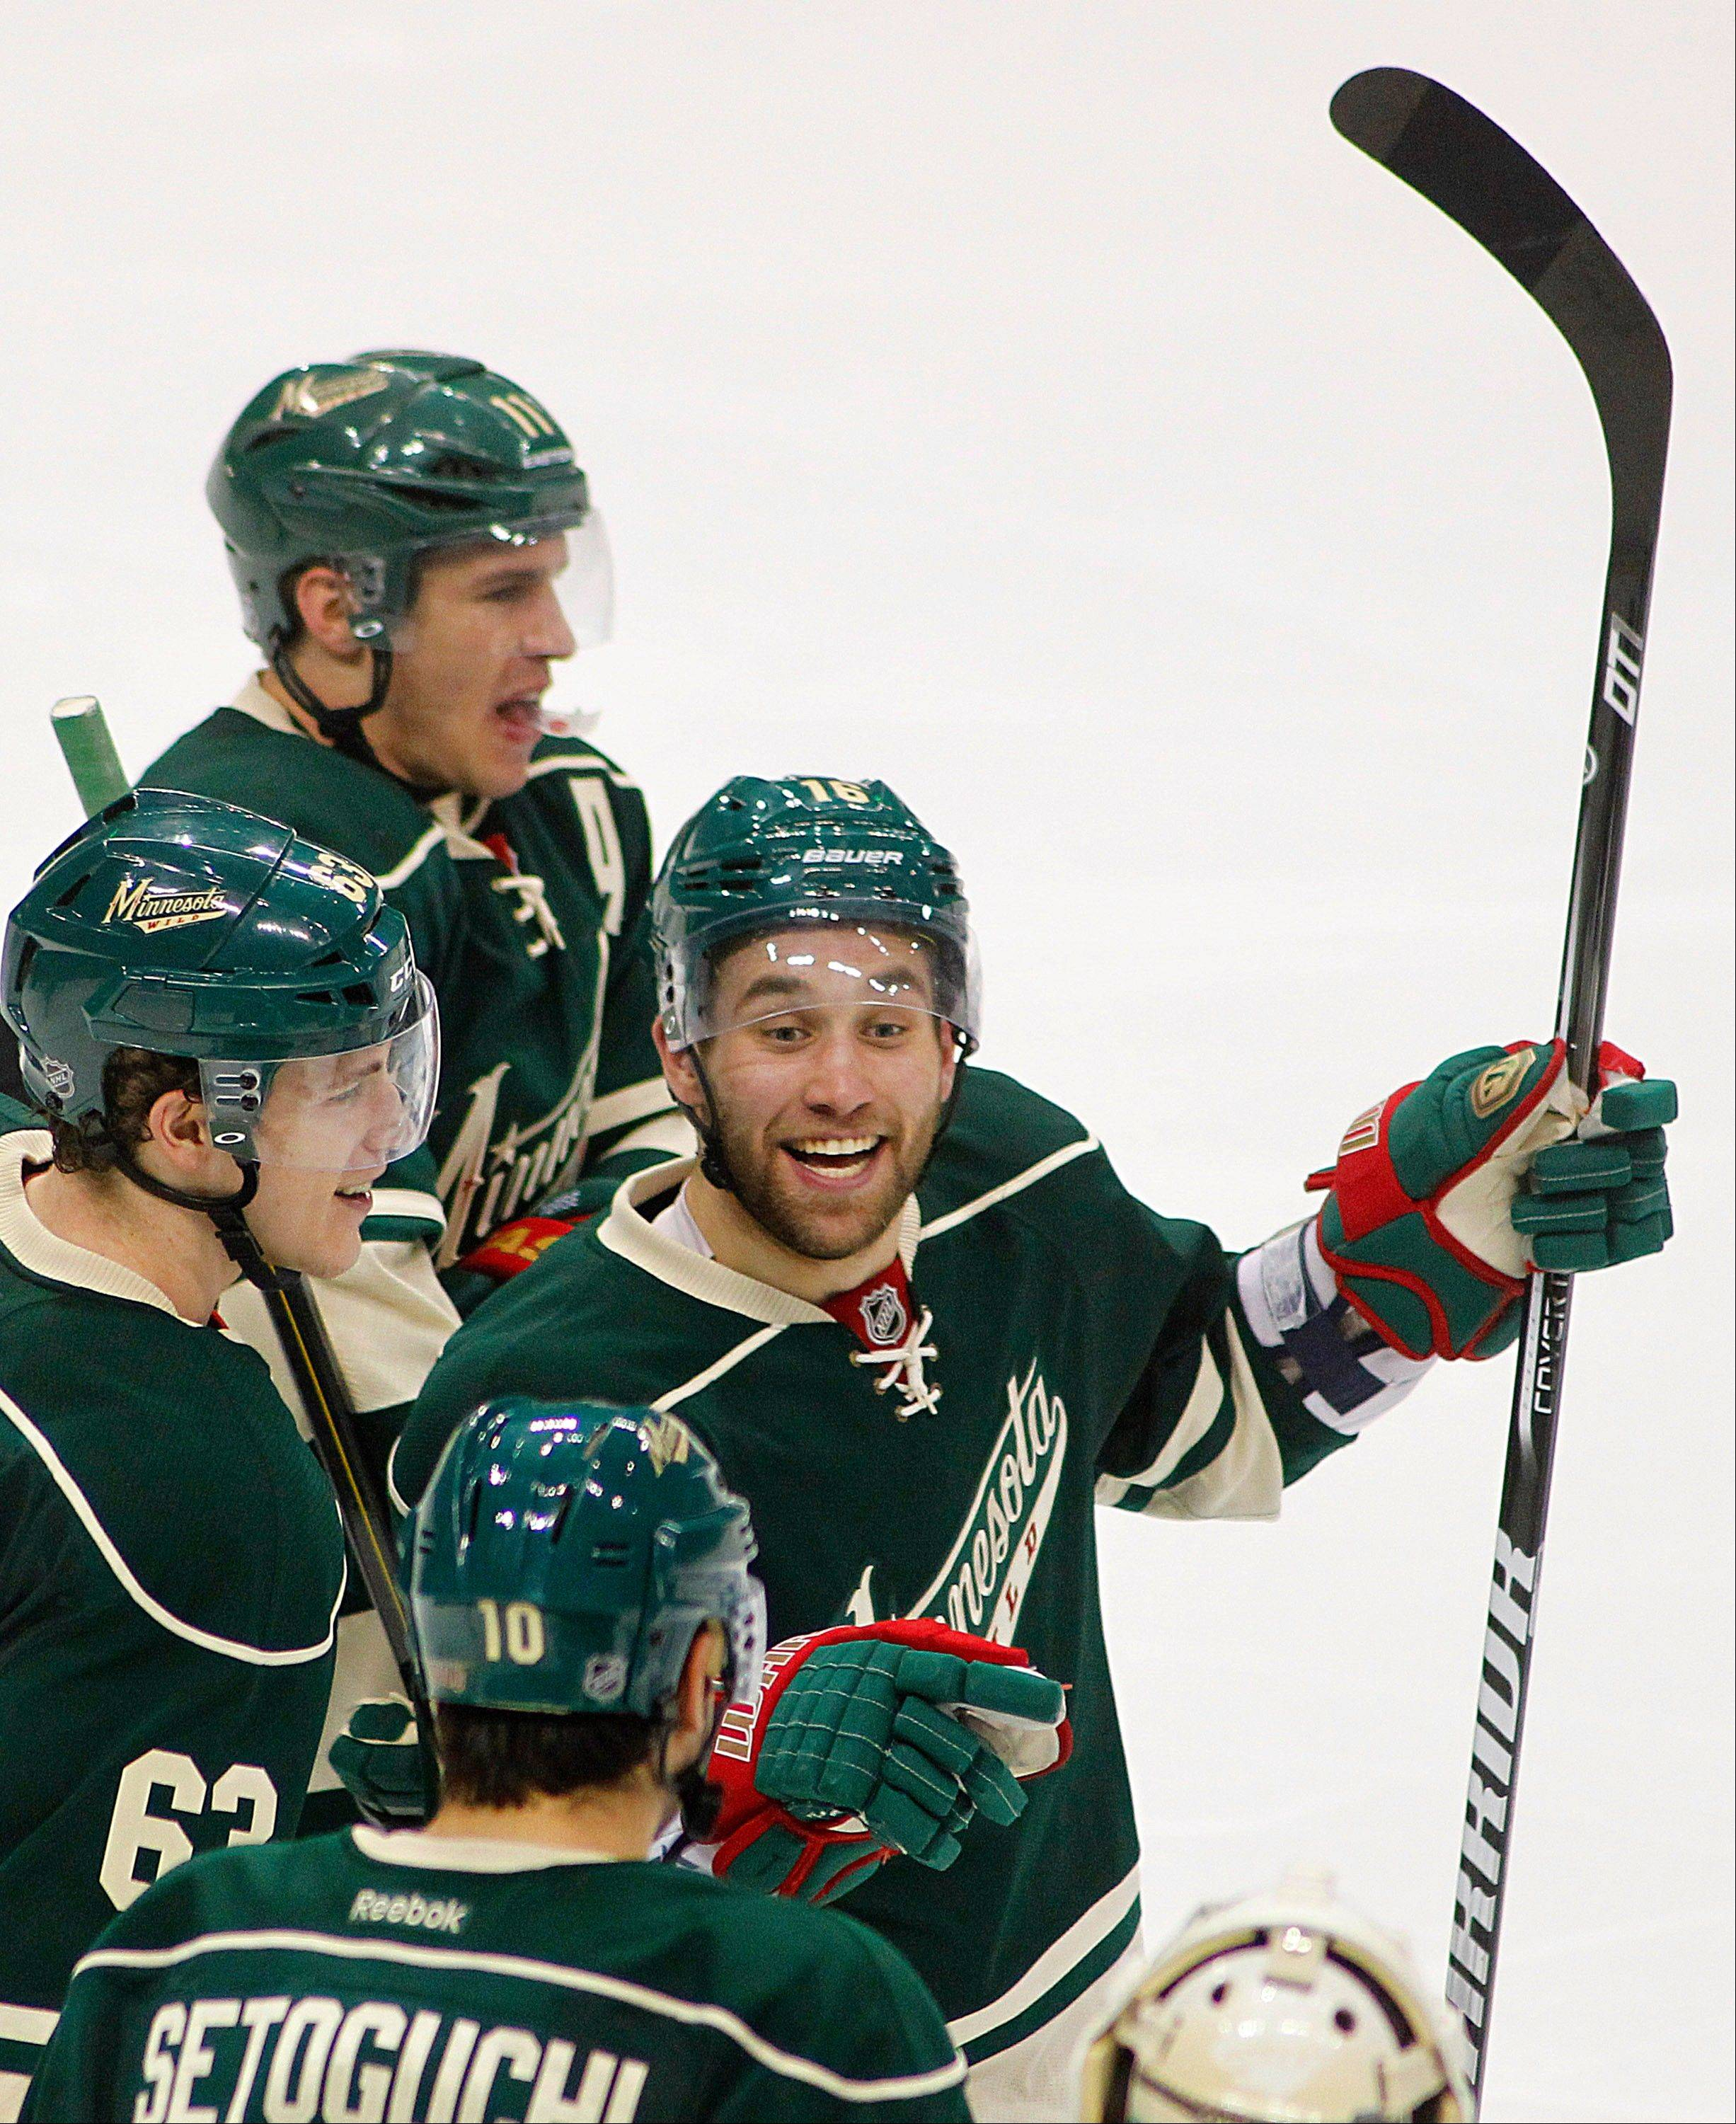 Minnesota Wild's Jason Zucker celebrates his overtime goal against the Chicago Blackhawks with teammates Zach Parise, top, Charlie Coyle and Devin Setoguchi during Game 3. The Wild defeated the Blackhawks 3-2.